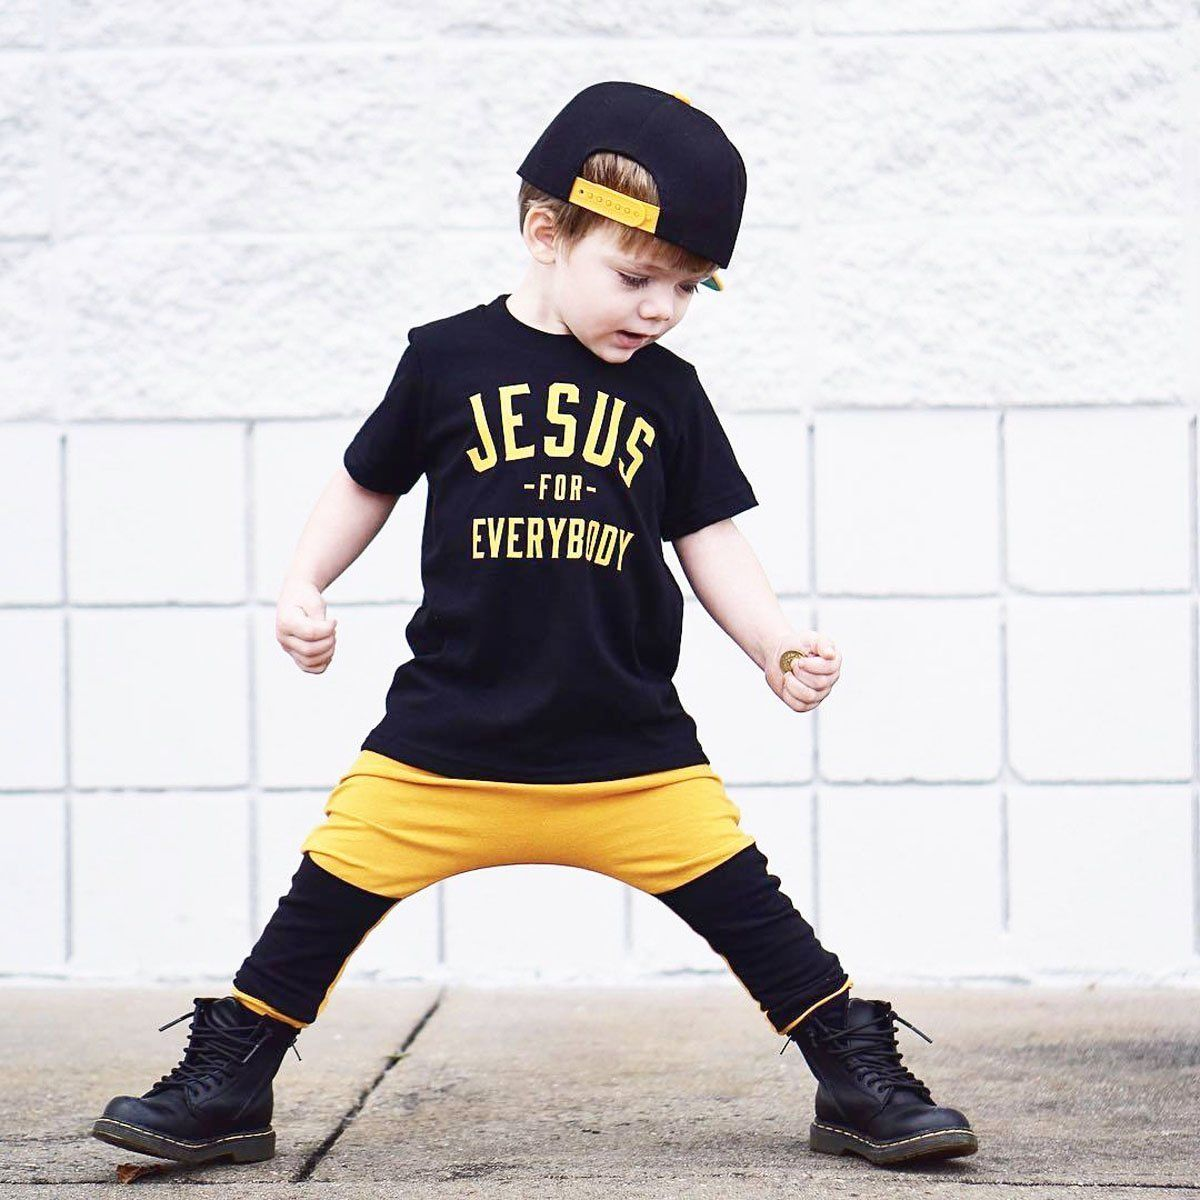 2PCS Newborn Toddler Infant Baby Kids Boy Clothes Short Sleeve Jesus T Shirt Pants Dance Hip Hop Summer Set Outfits Suit 1T~6T baby boy clothes kids bodysuit infant coverall newborn romper short sleeve polo shirt cotton children costume outfit suit